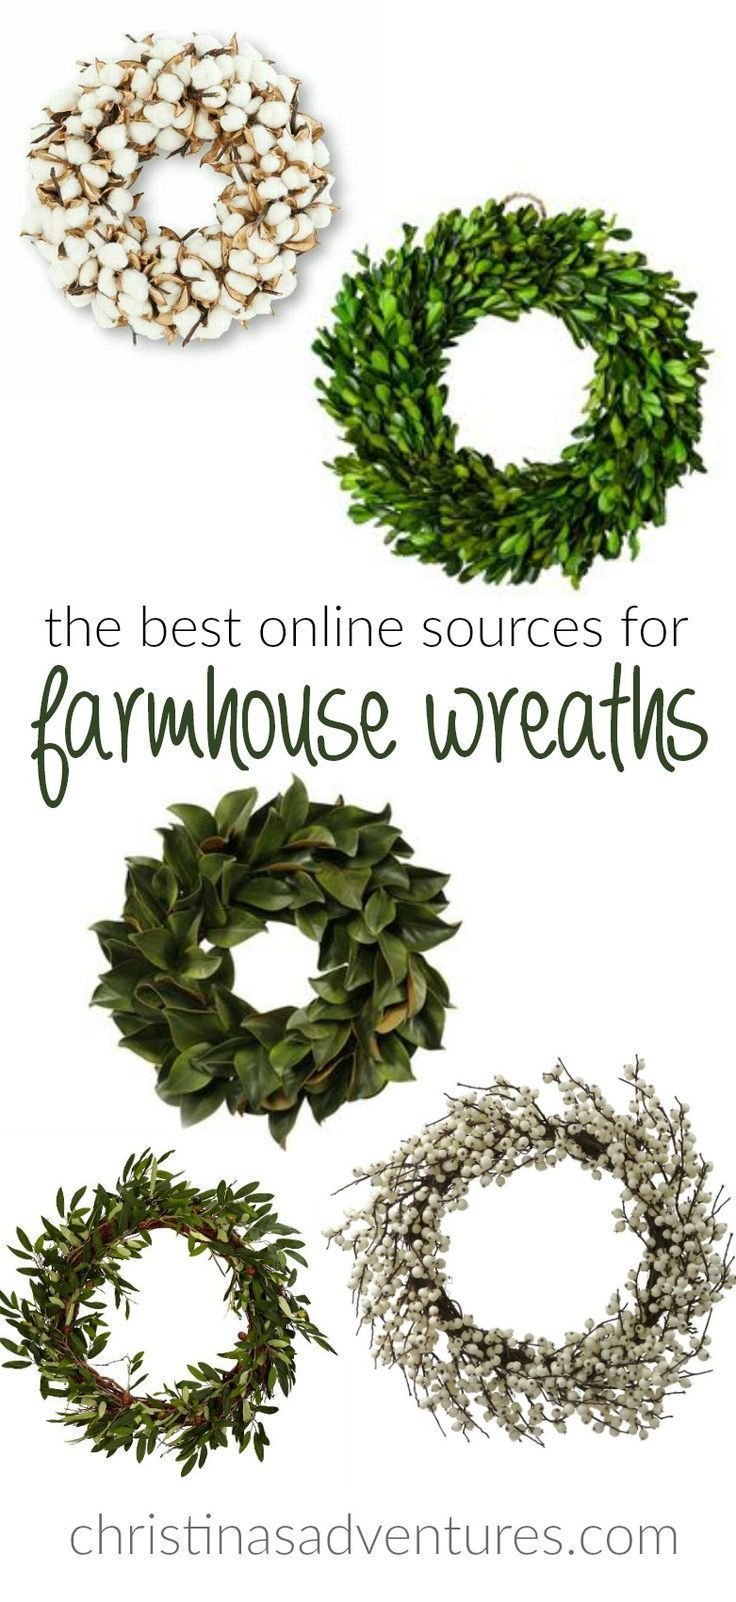 If you're fixer upper and farmhouse obsessed, you'll need some great wreaths for your home decor! Here's the best online sources for farmhouse wreaths #cheaphomedecor